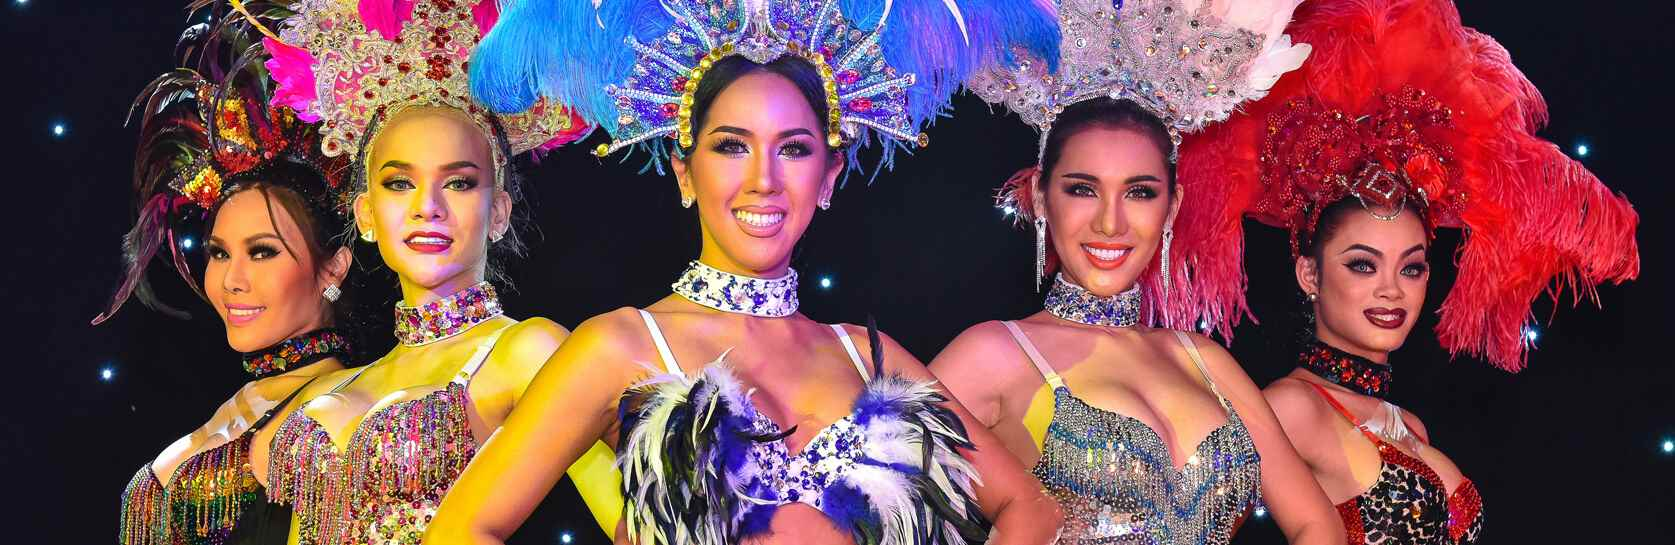 The Ladyboys of Bangkok